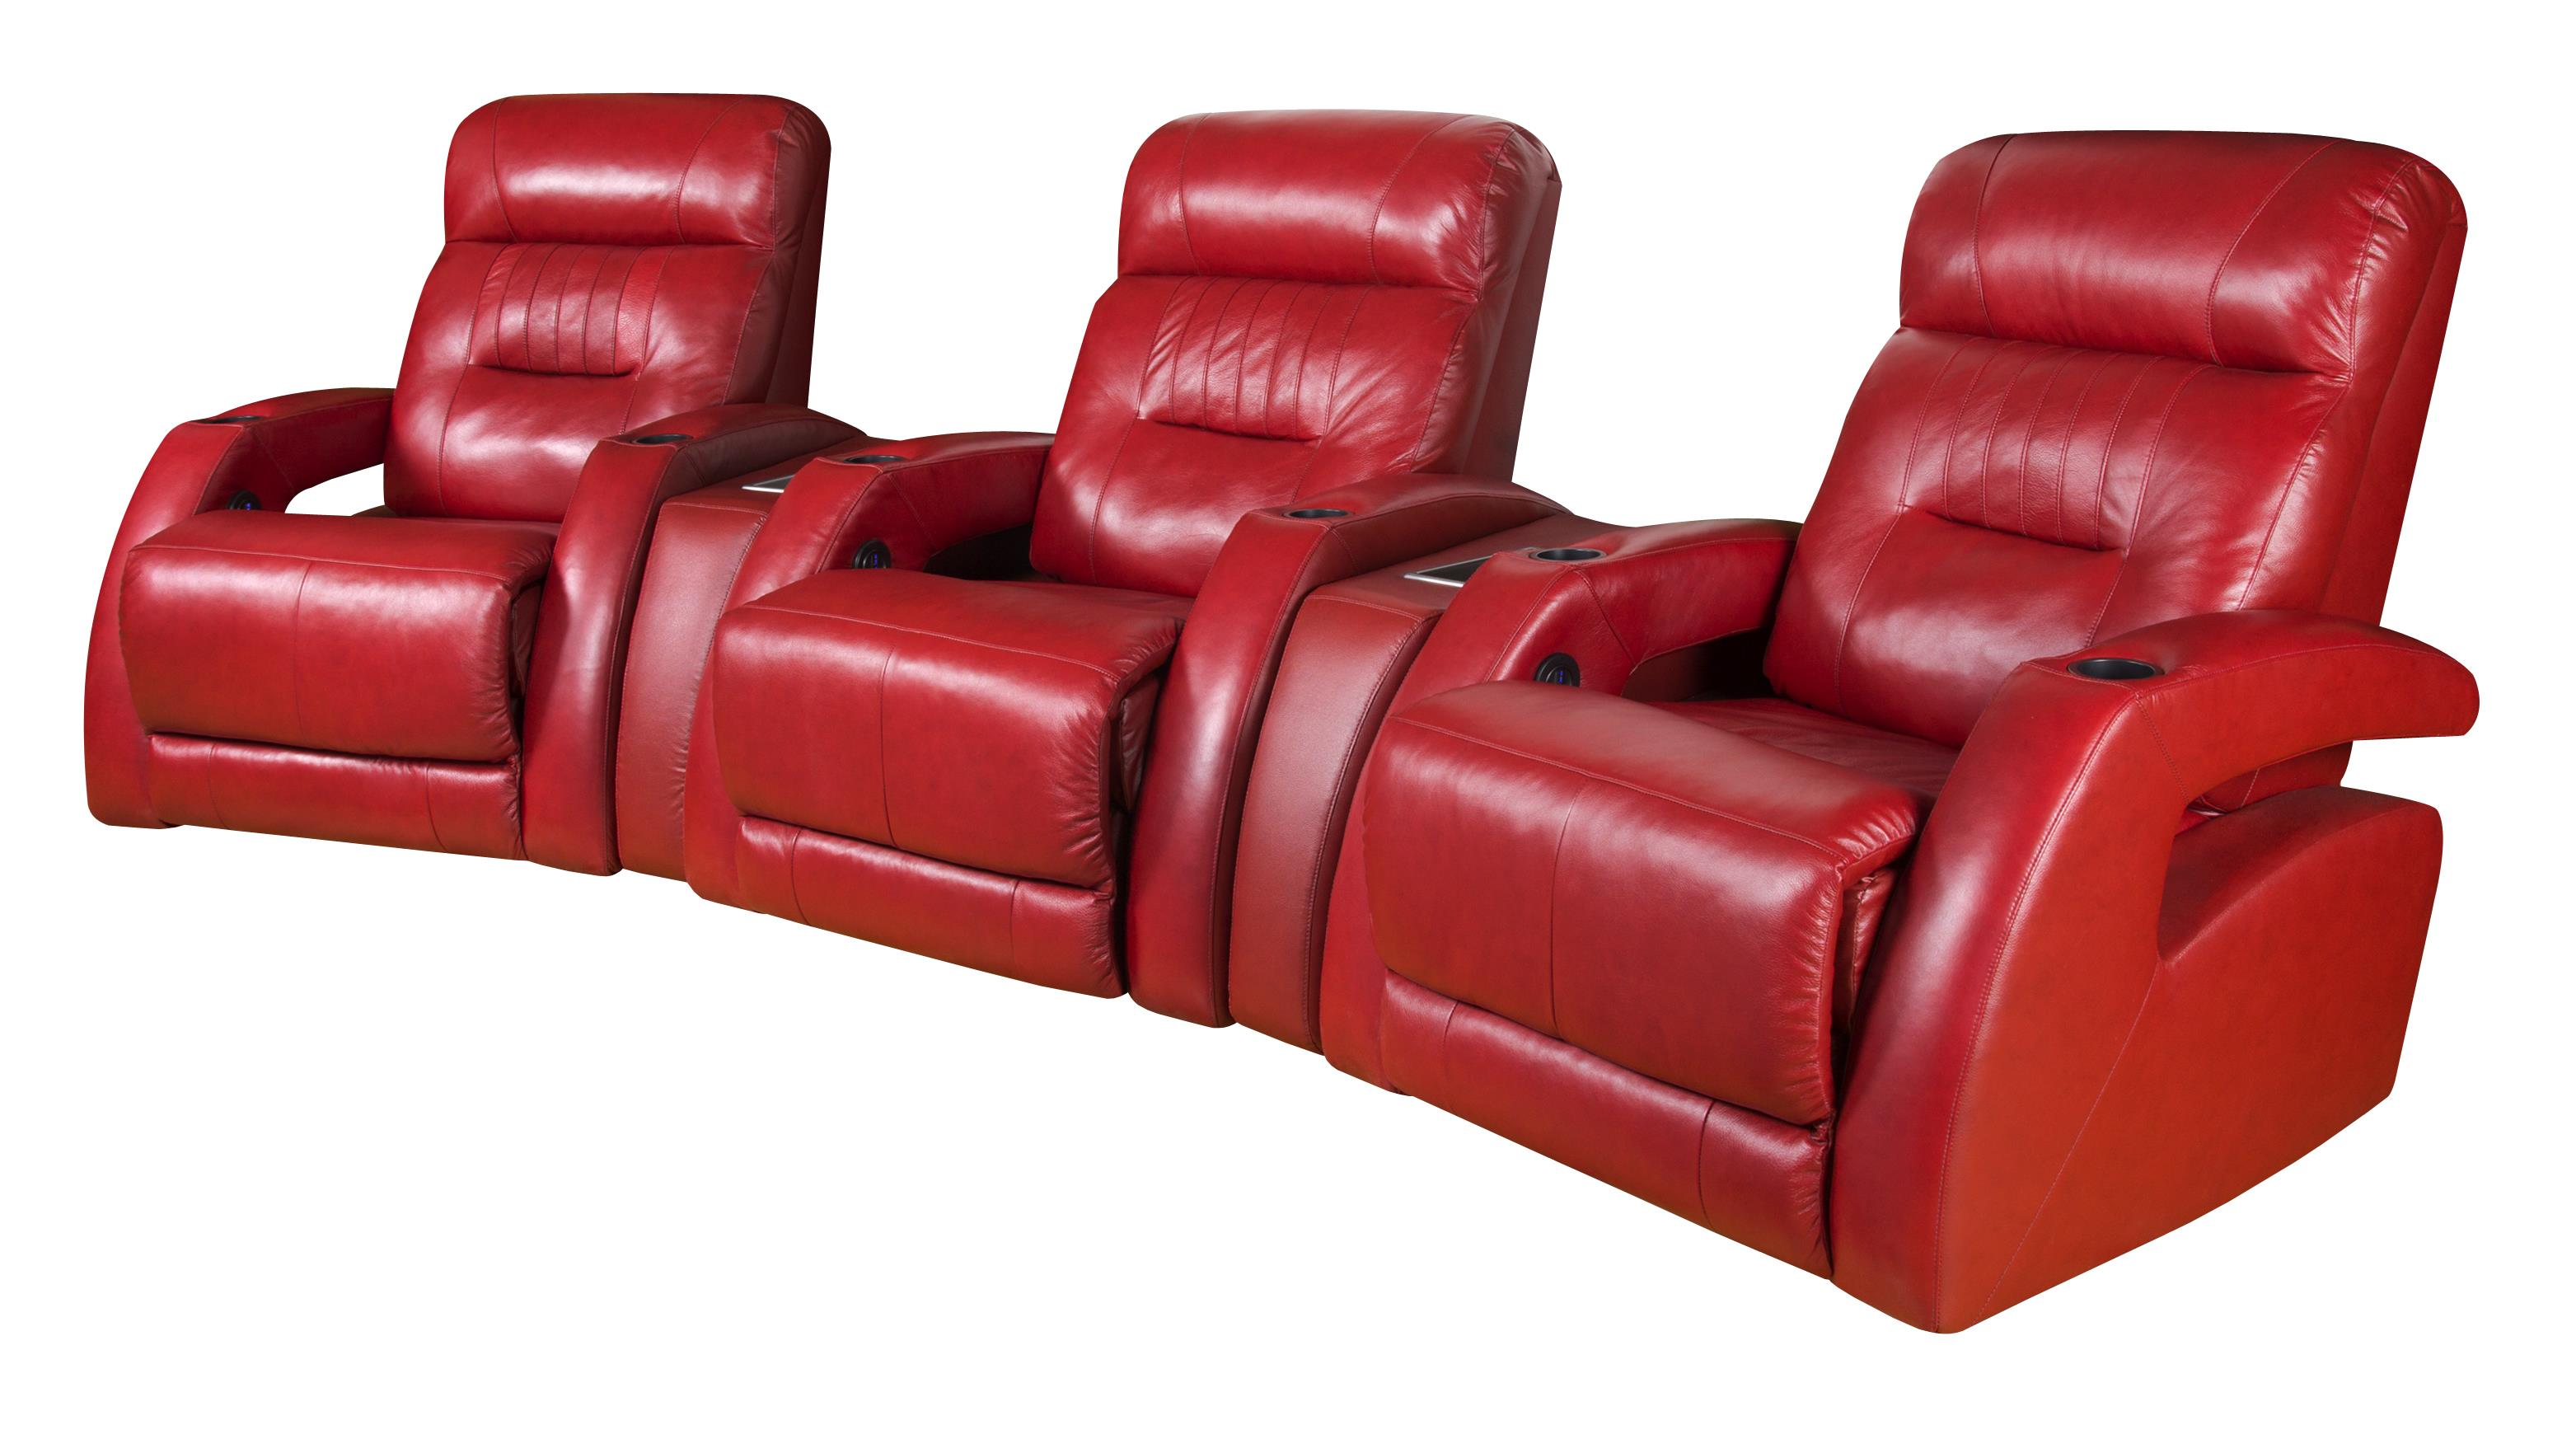 Theater Seating Sectional with Modern Style  sc 1 st  Wolf Furniture : theater seating sectional - Sectionals, Sofas & Couches